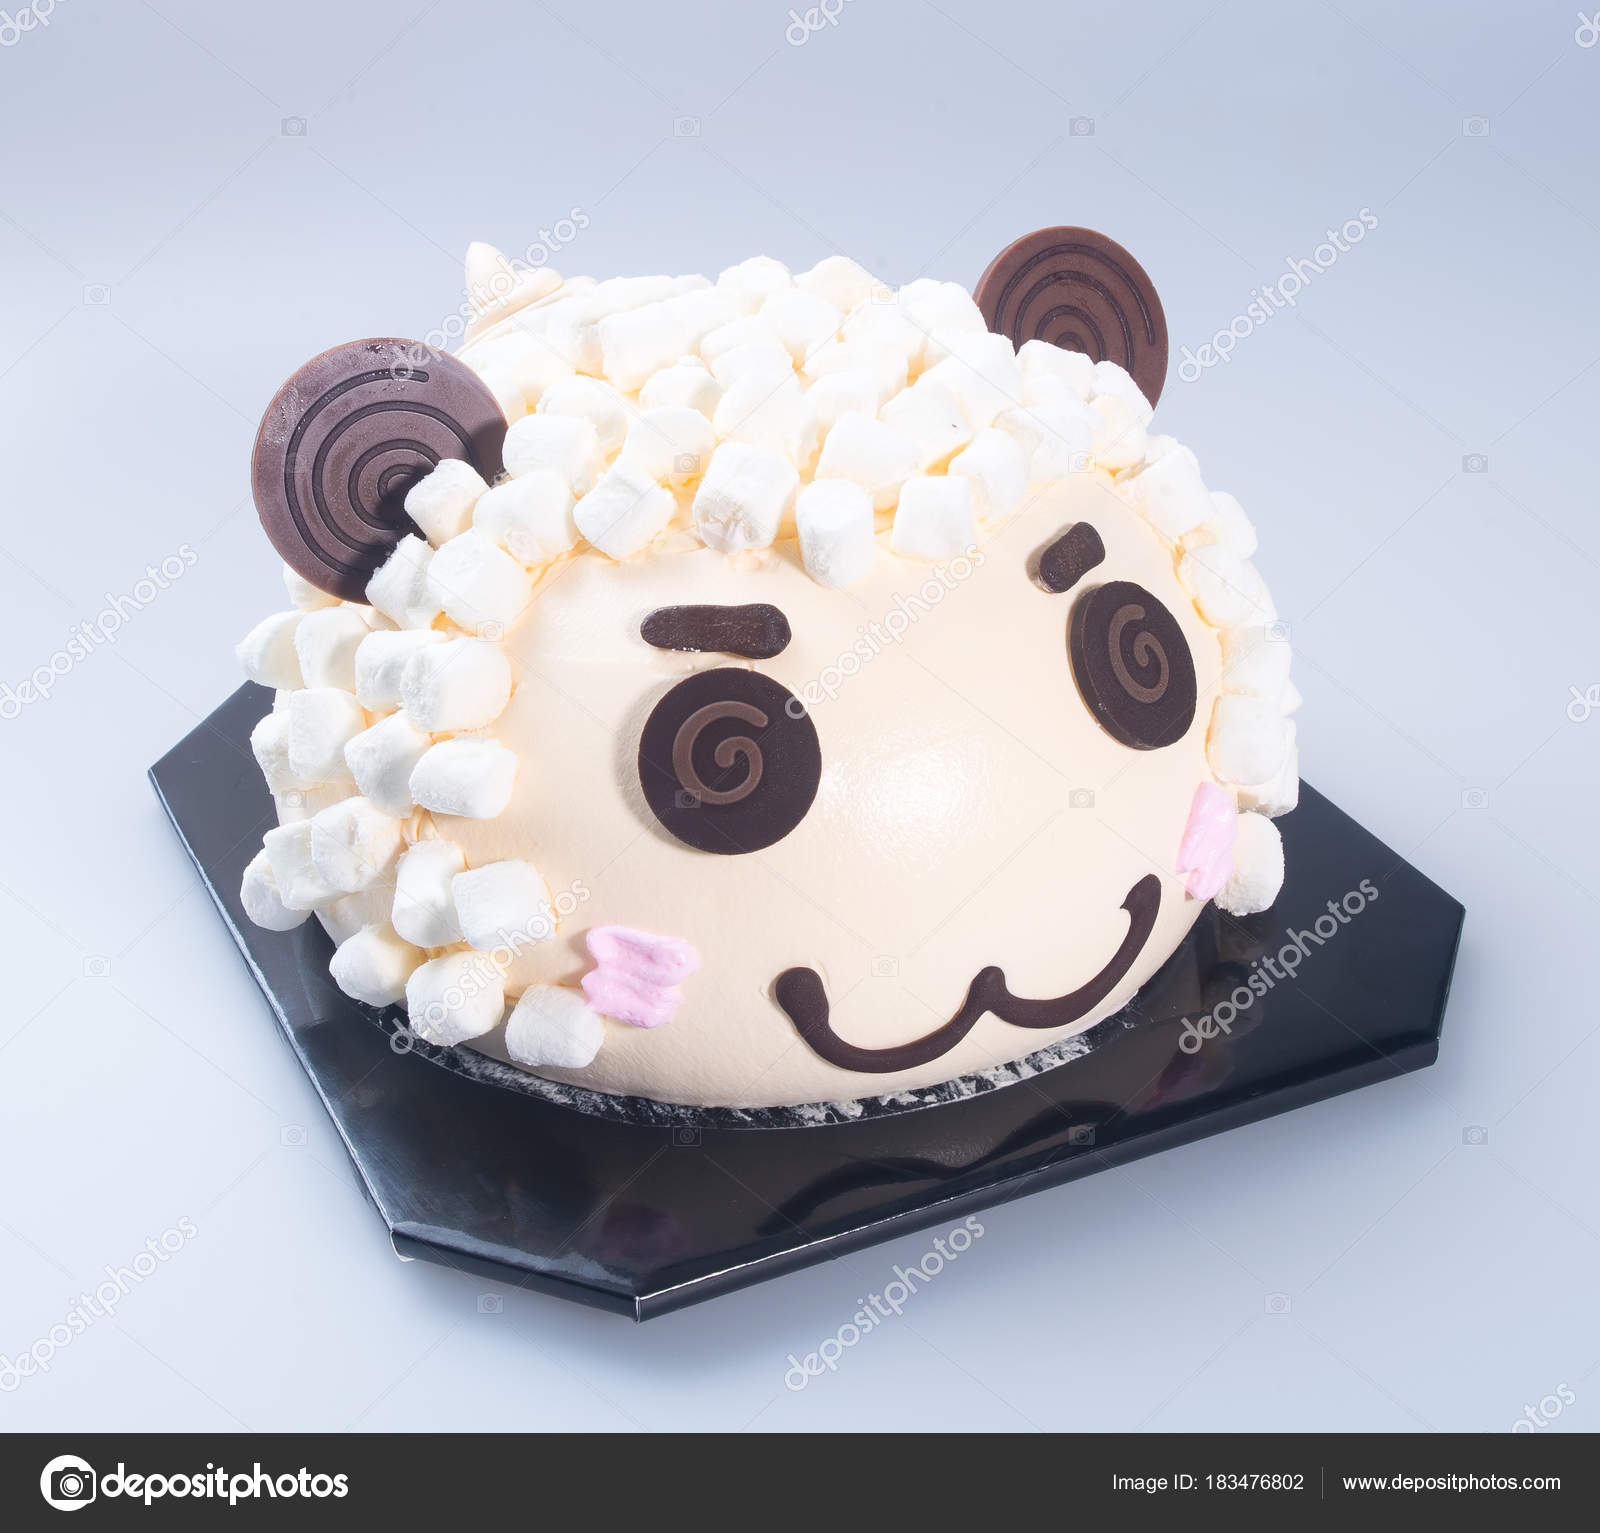 Cake Or Sheep Birthday On A Background Photo By